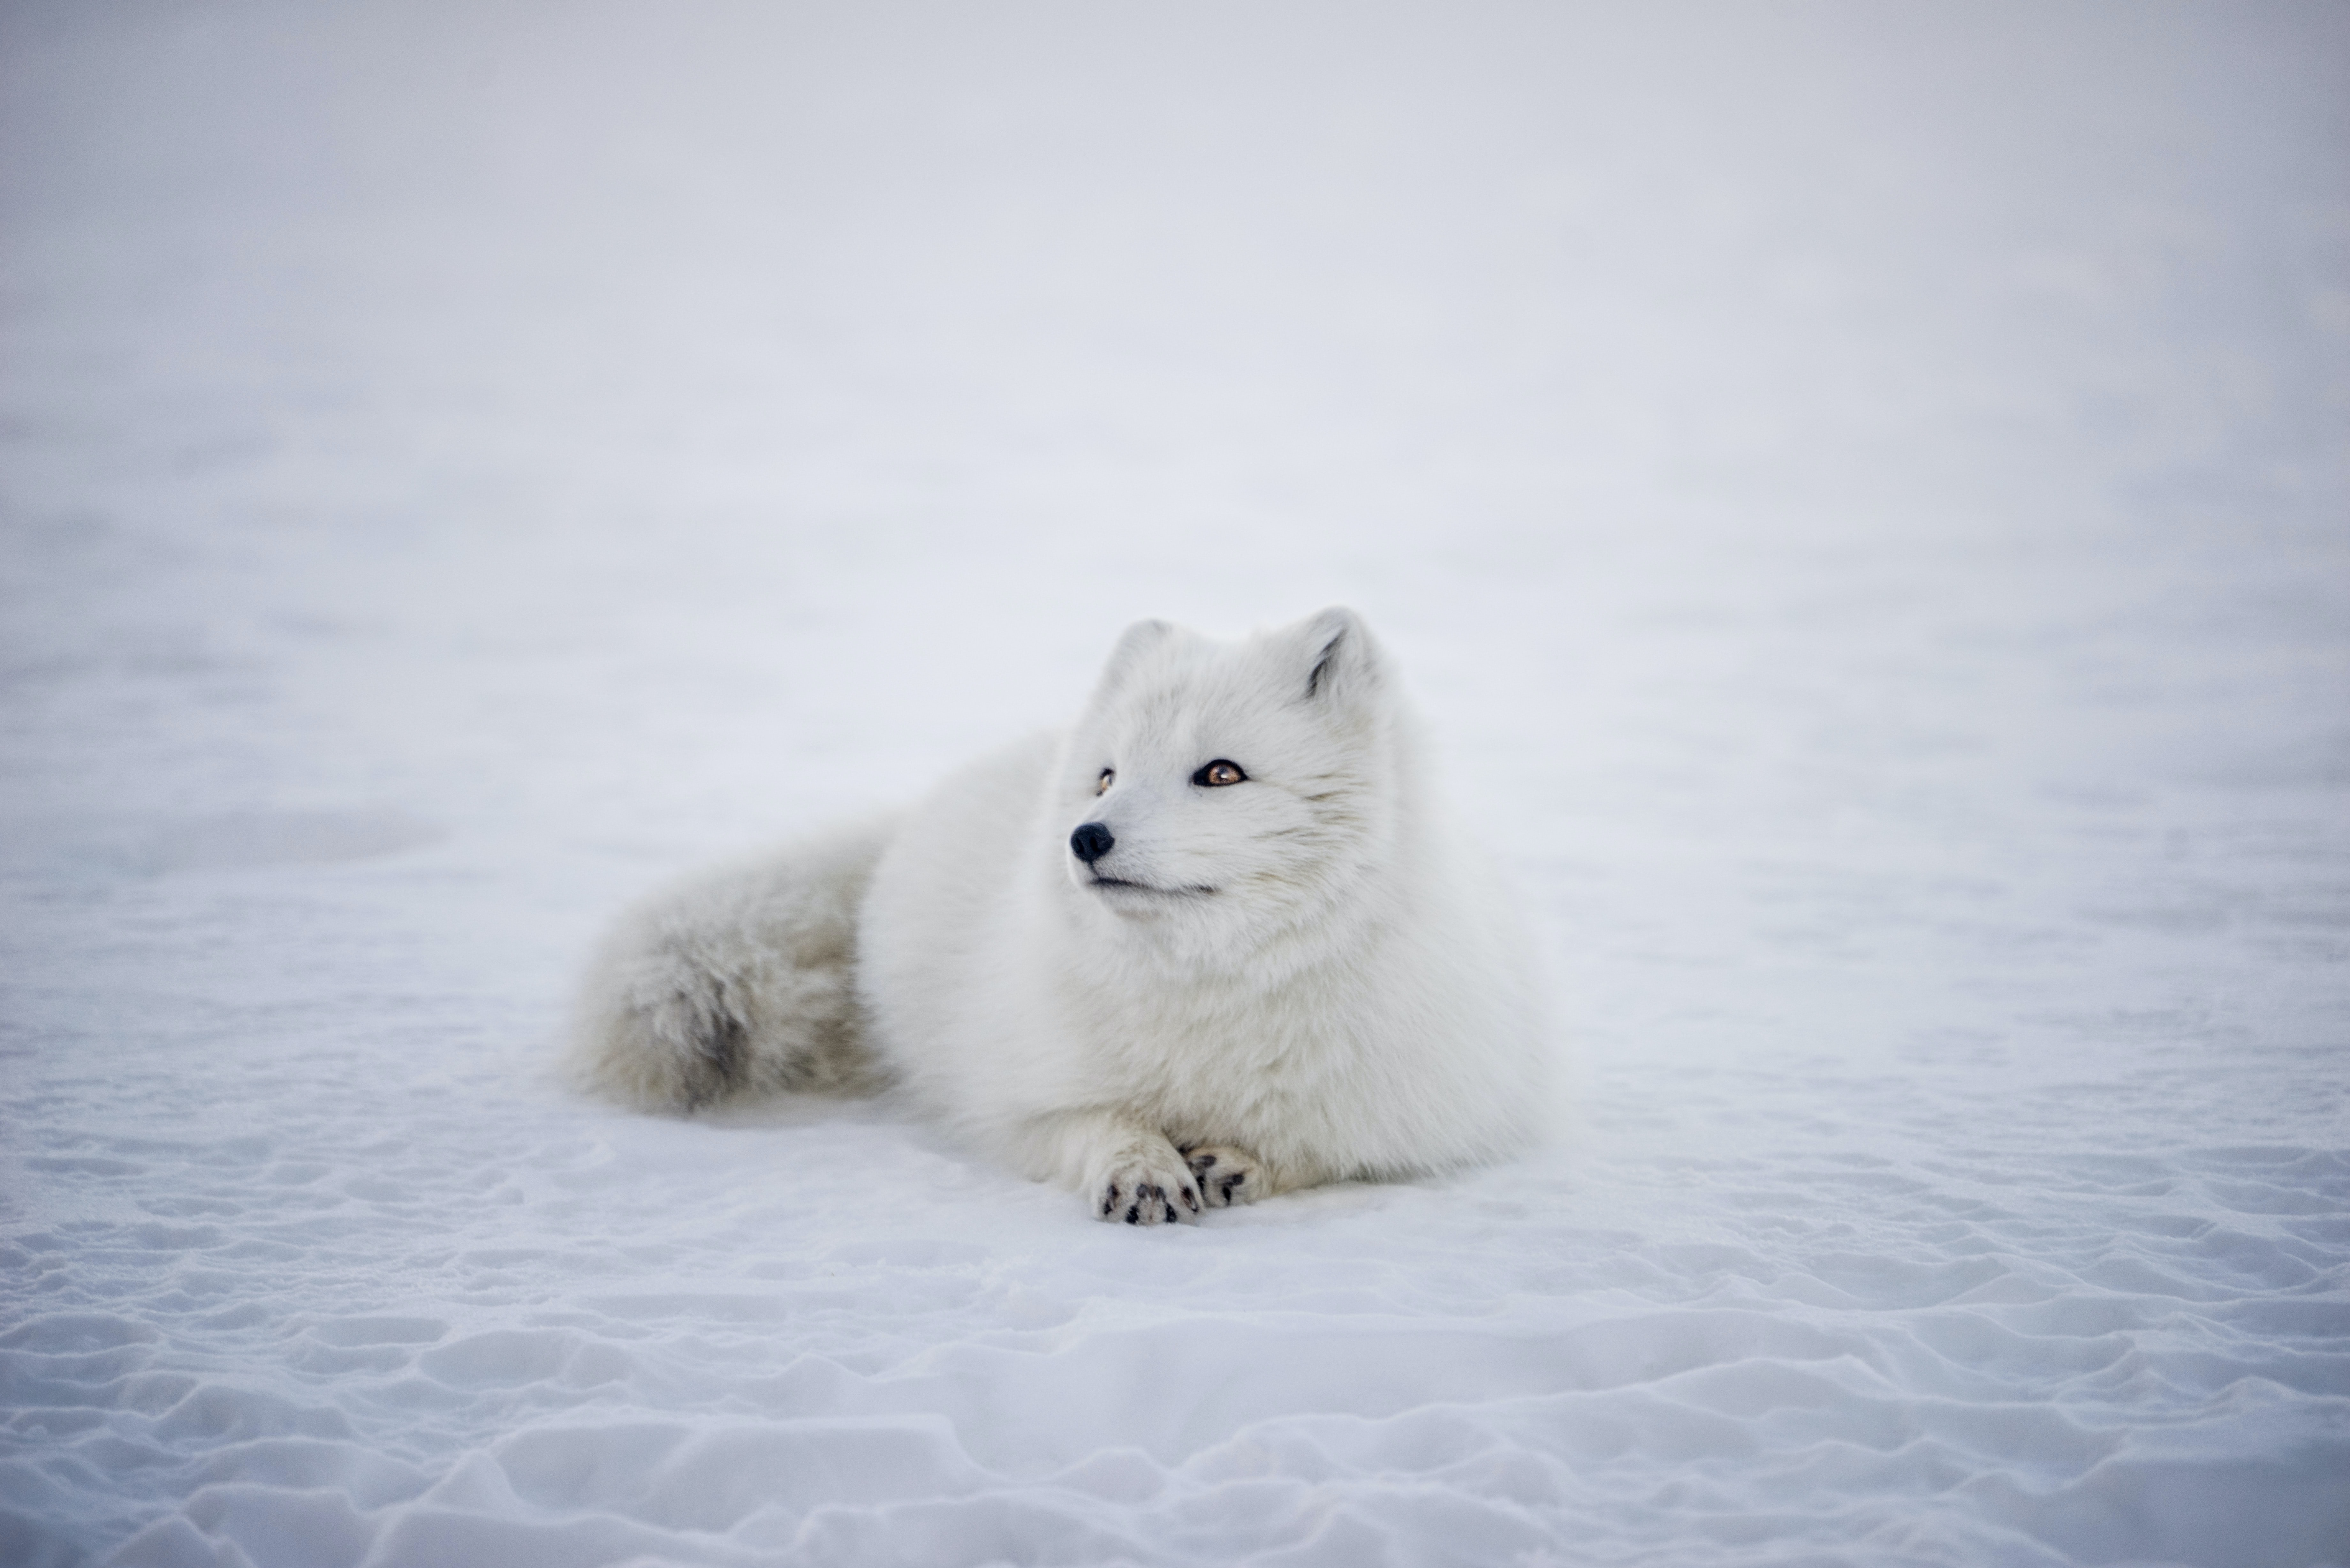 Arctic fox sits in the ice and snow in the winter